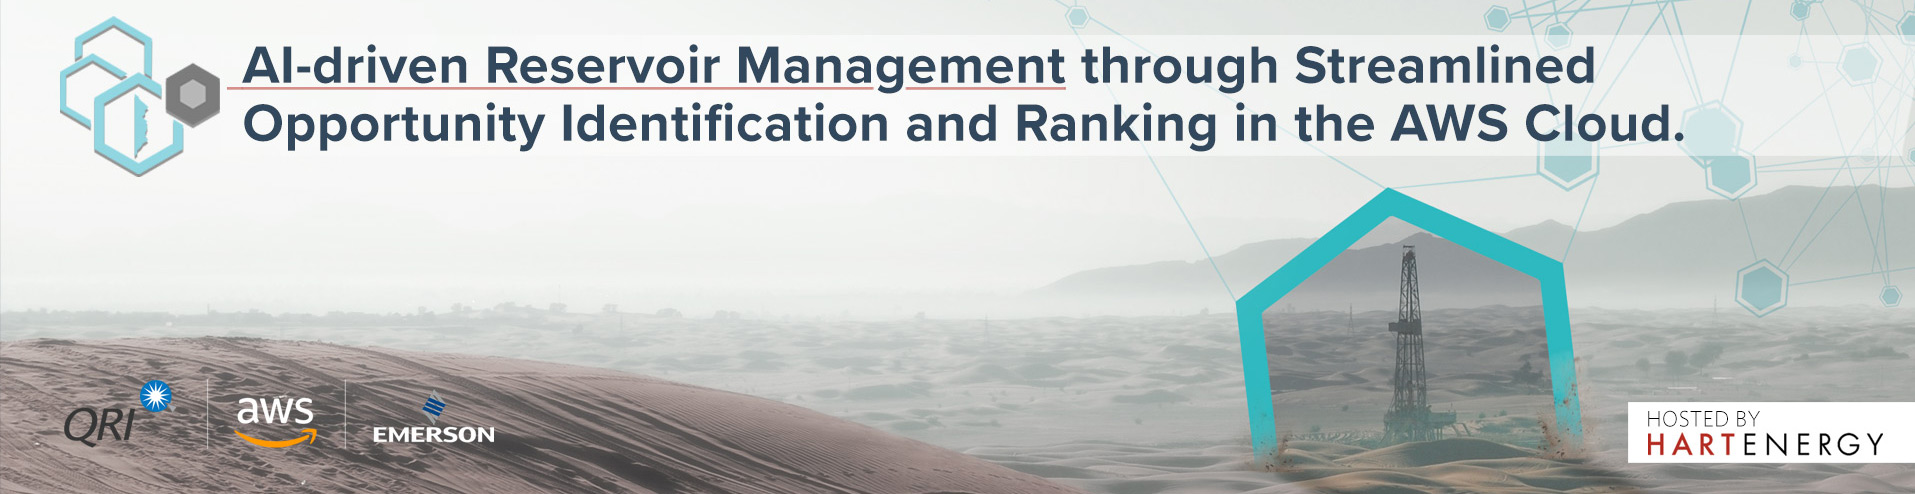 AI-driven Reservoir Management through Streamlined Opportunity Identification and Ranking in the AWS Cloud.